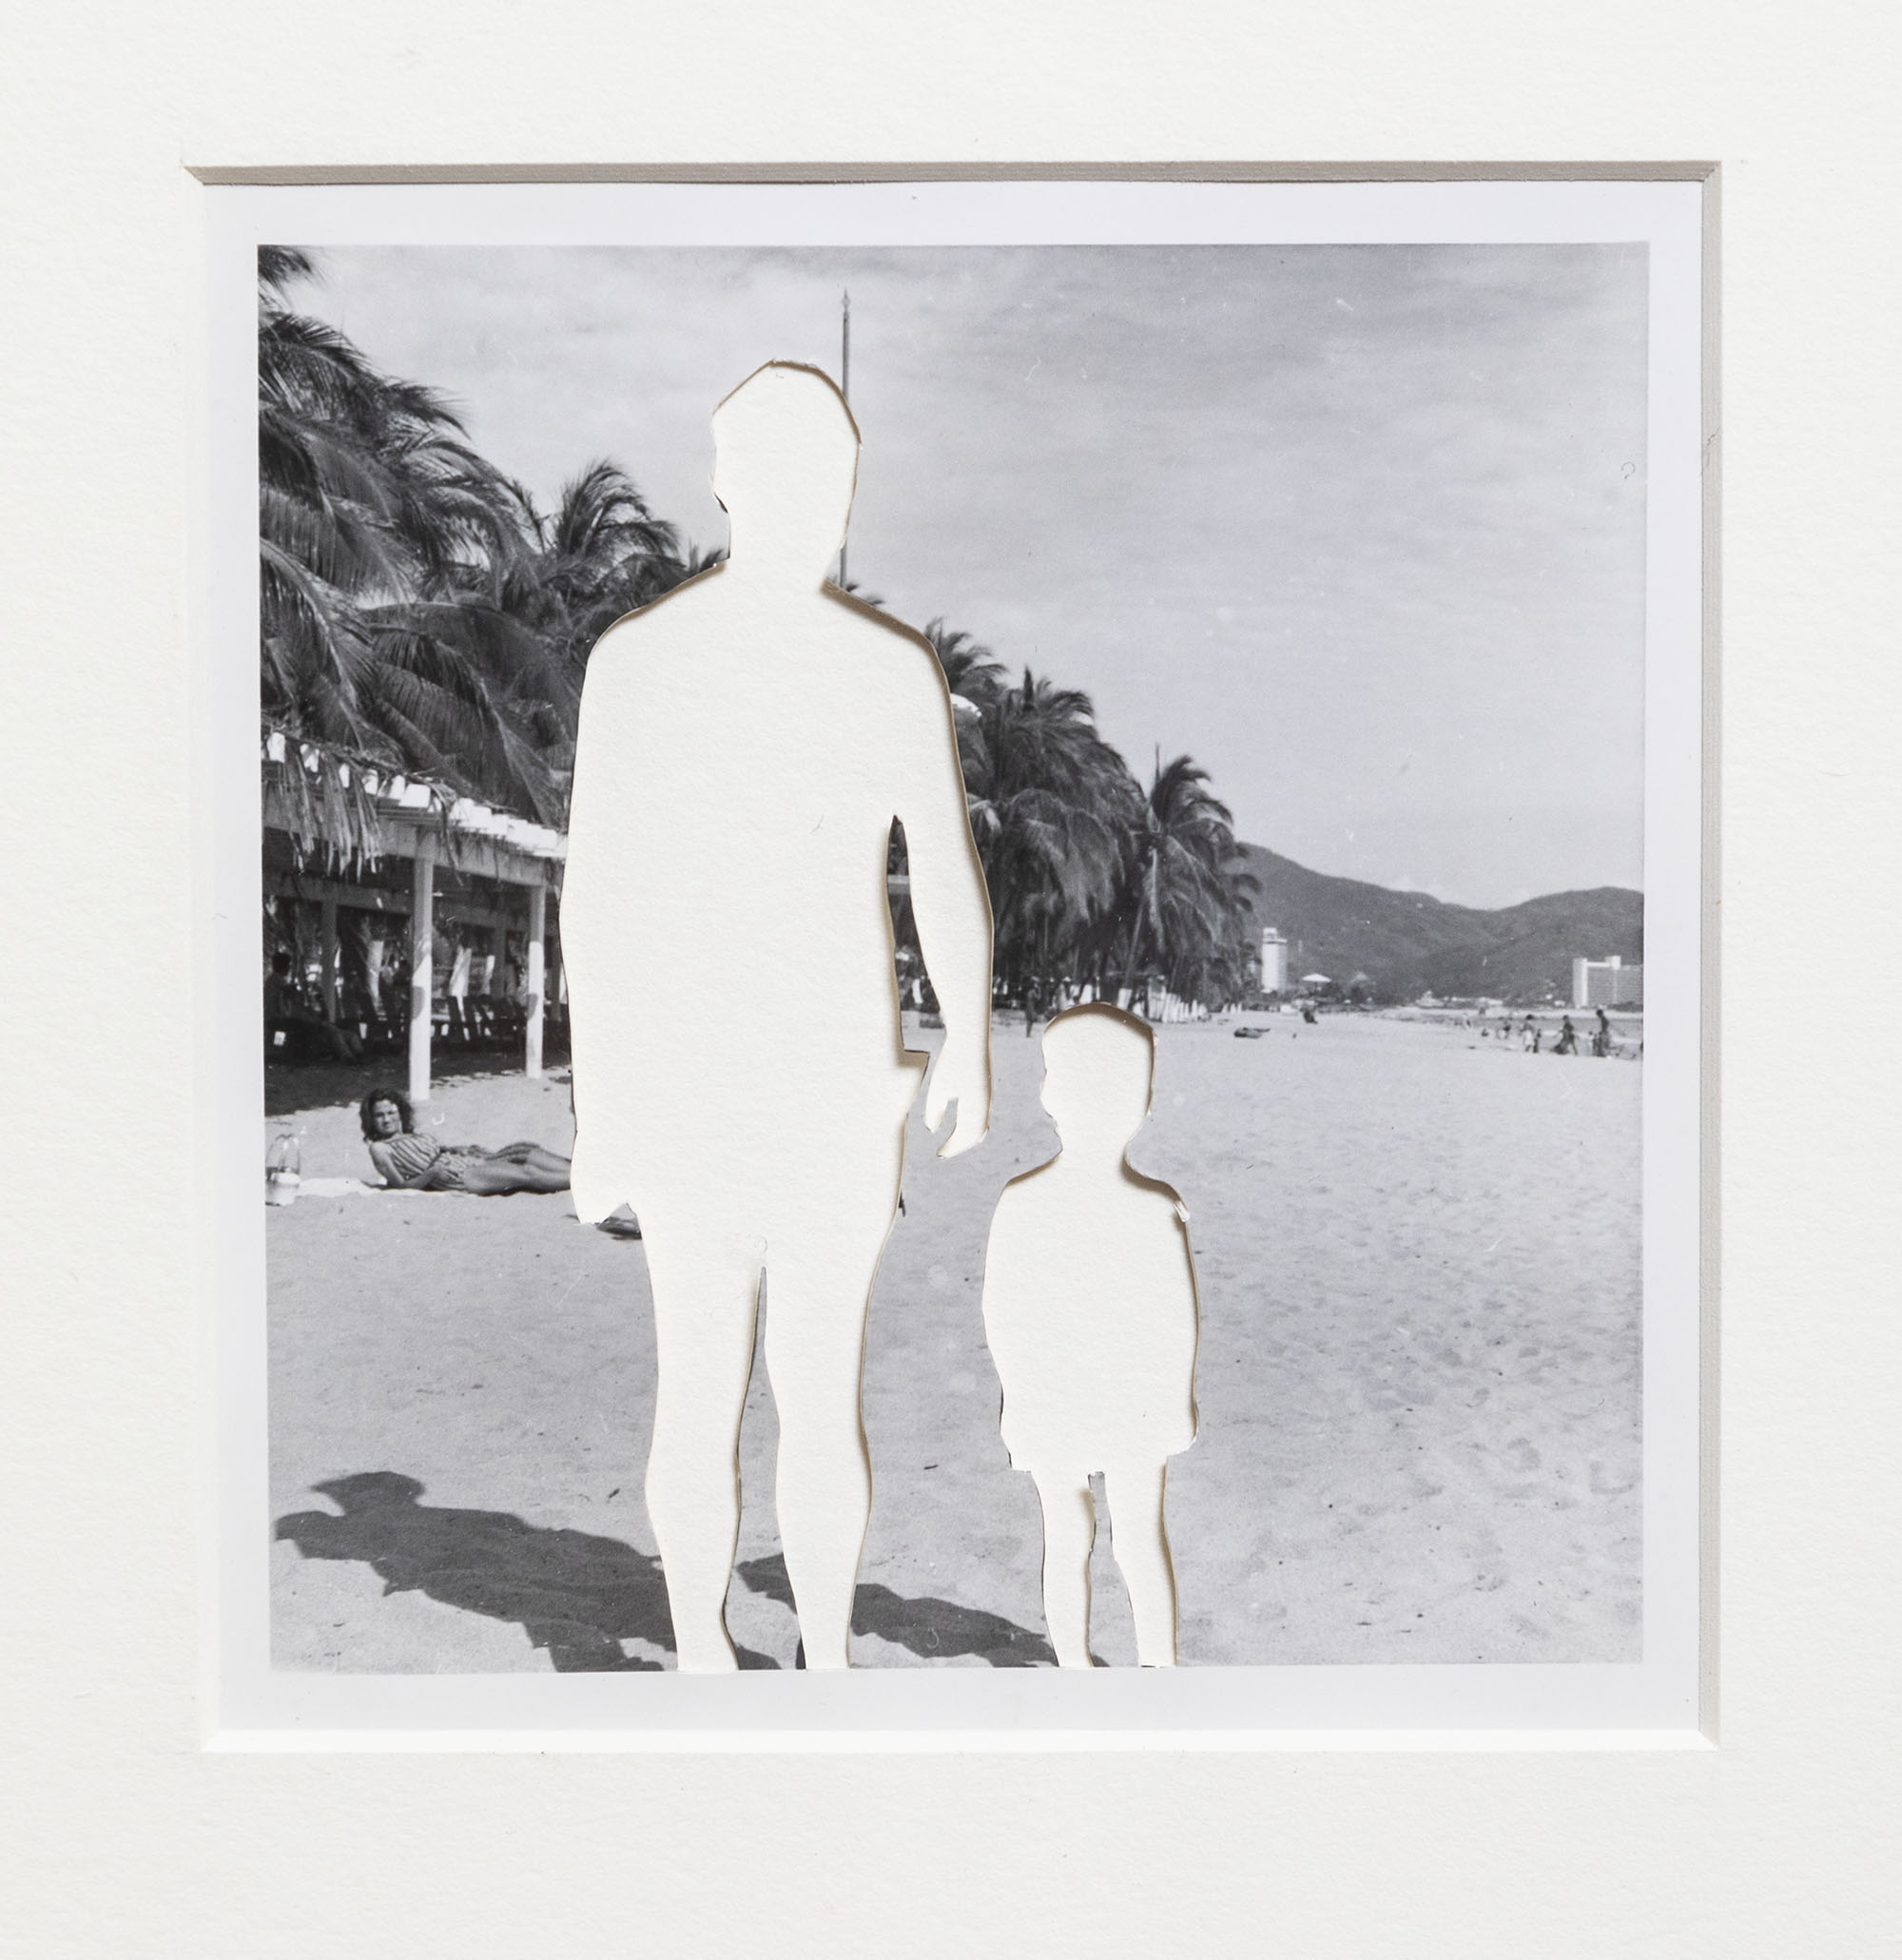 StudioSession-901.jpg Alejandro Cartagena (Mexican, b. Dominican Republic, b. 1977). Detail from Vacaciones familiares (después Roma) / Family Vacation (after Roma), 2019. Altered gelatin silver print. Courtesy of the artist. © Alejandro Cartagena